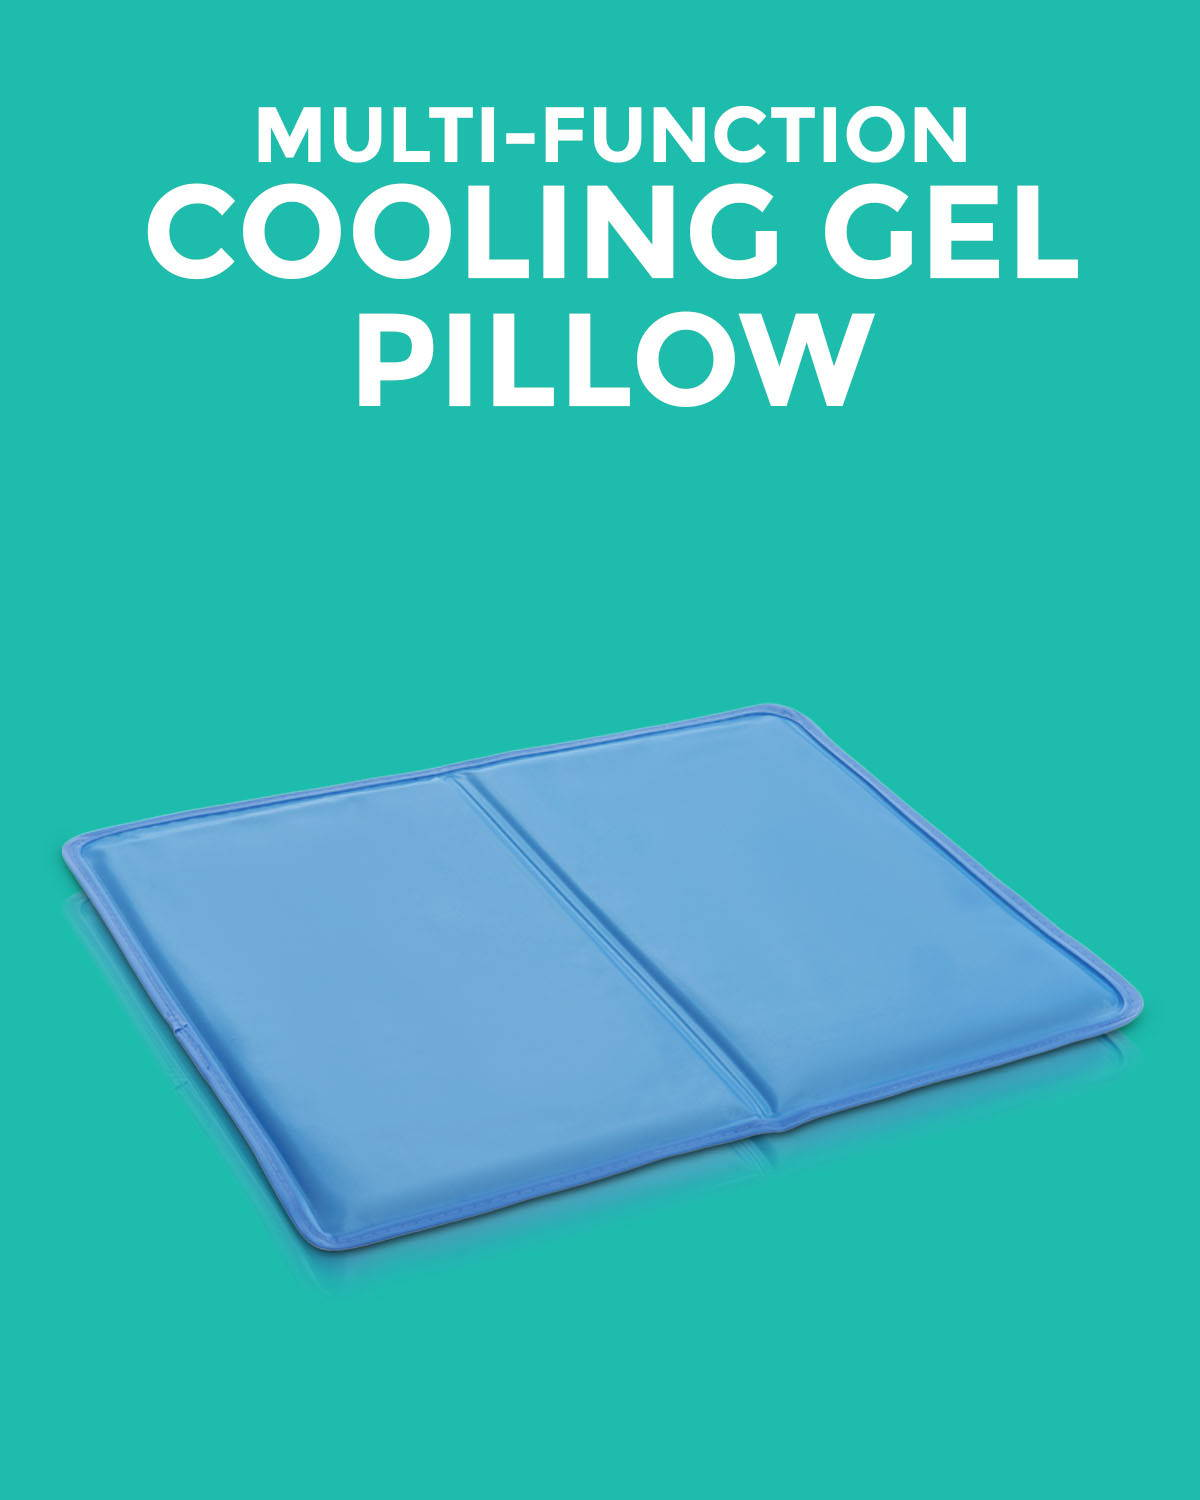 Multi-function Cooling Gel Pillow